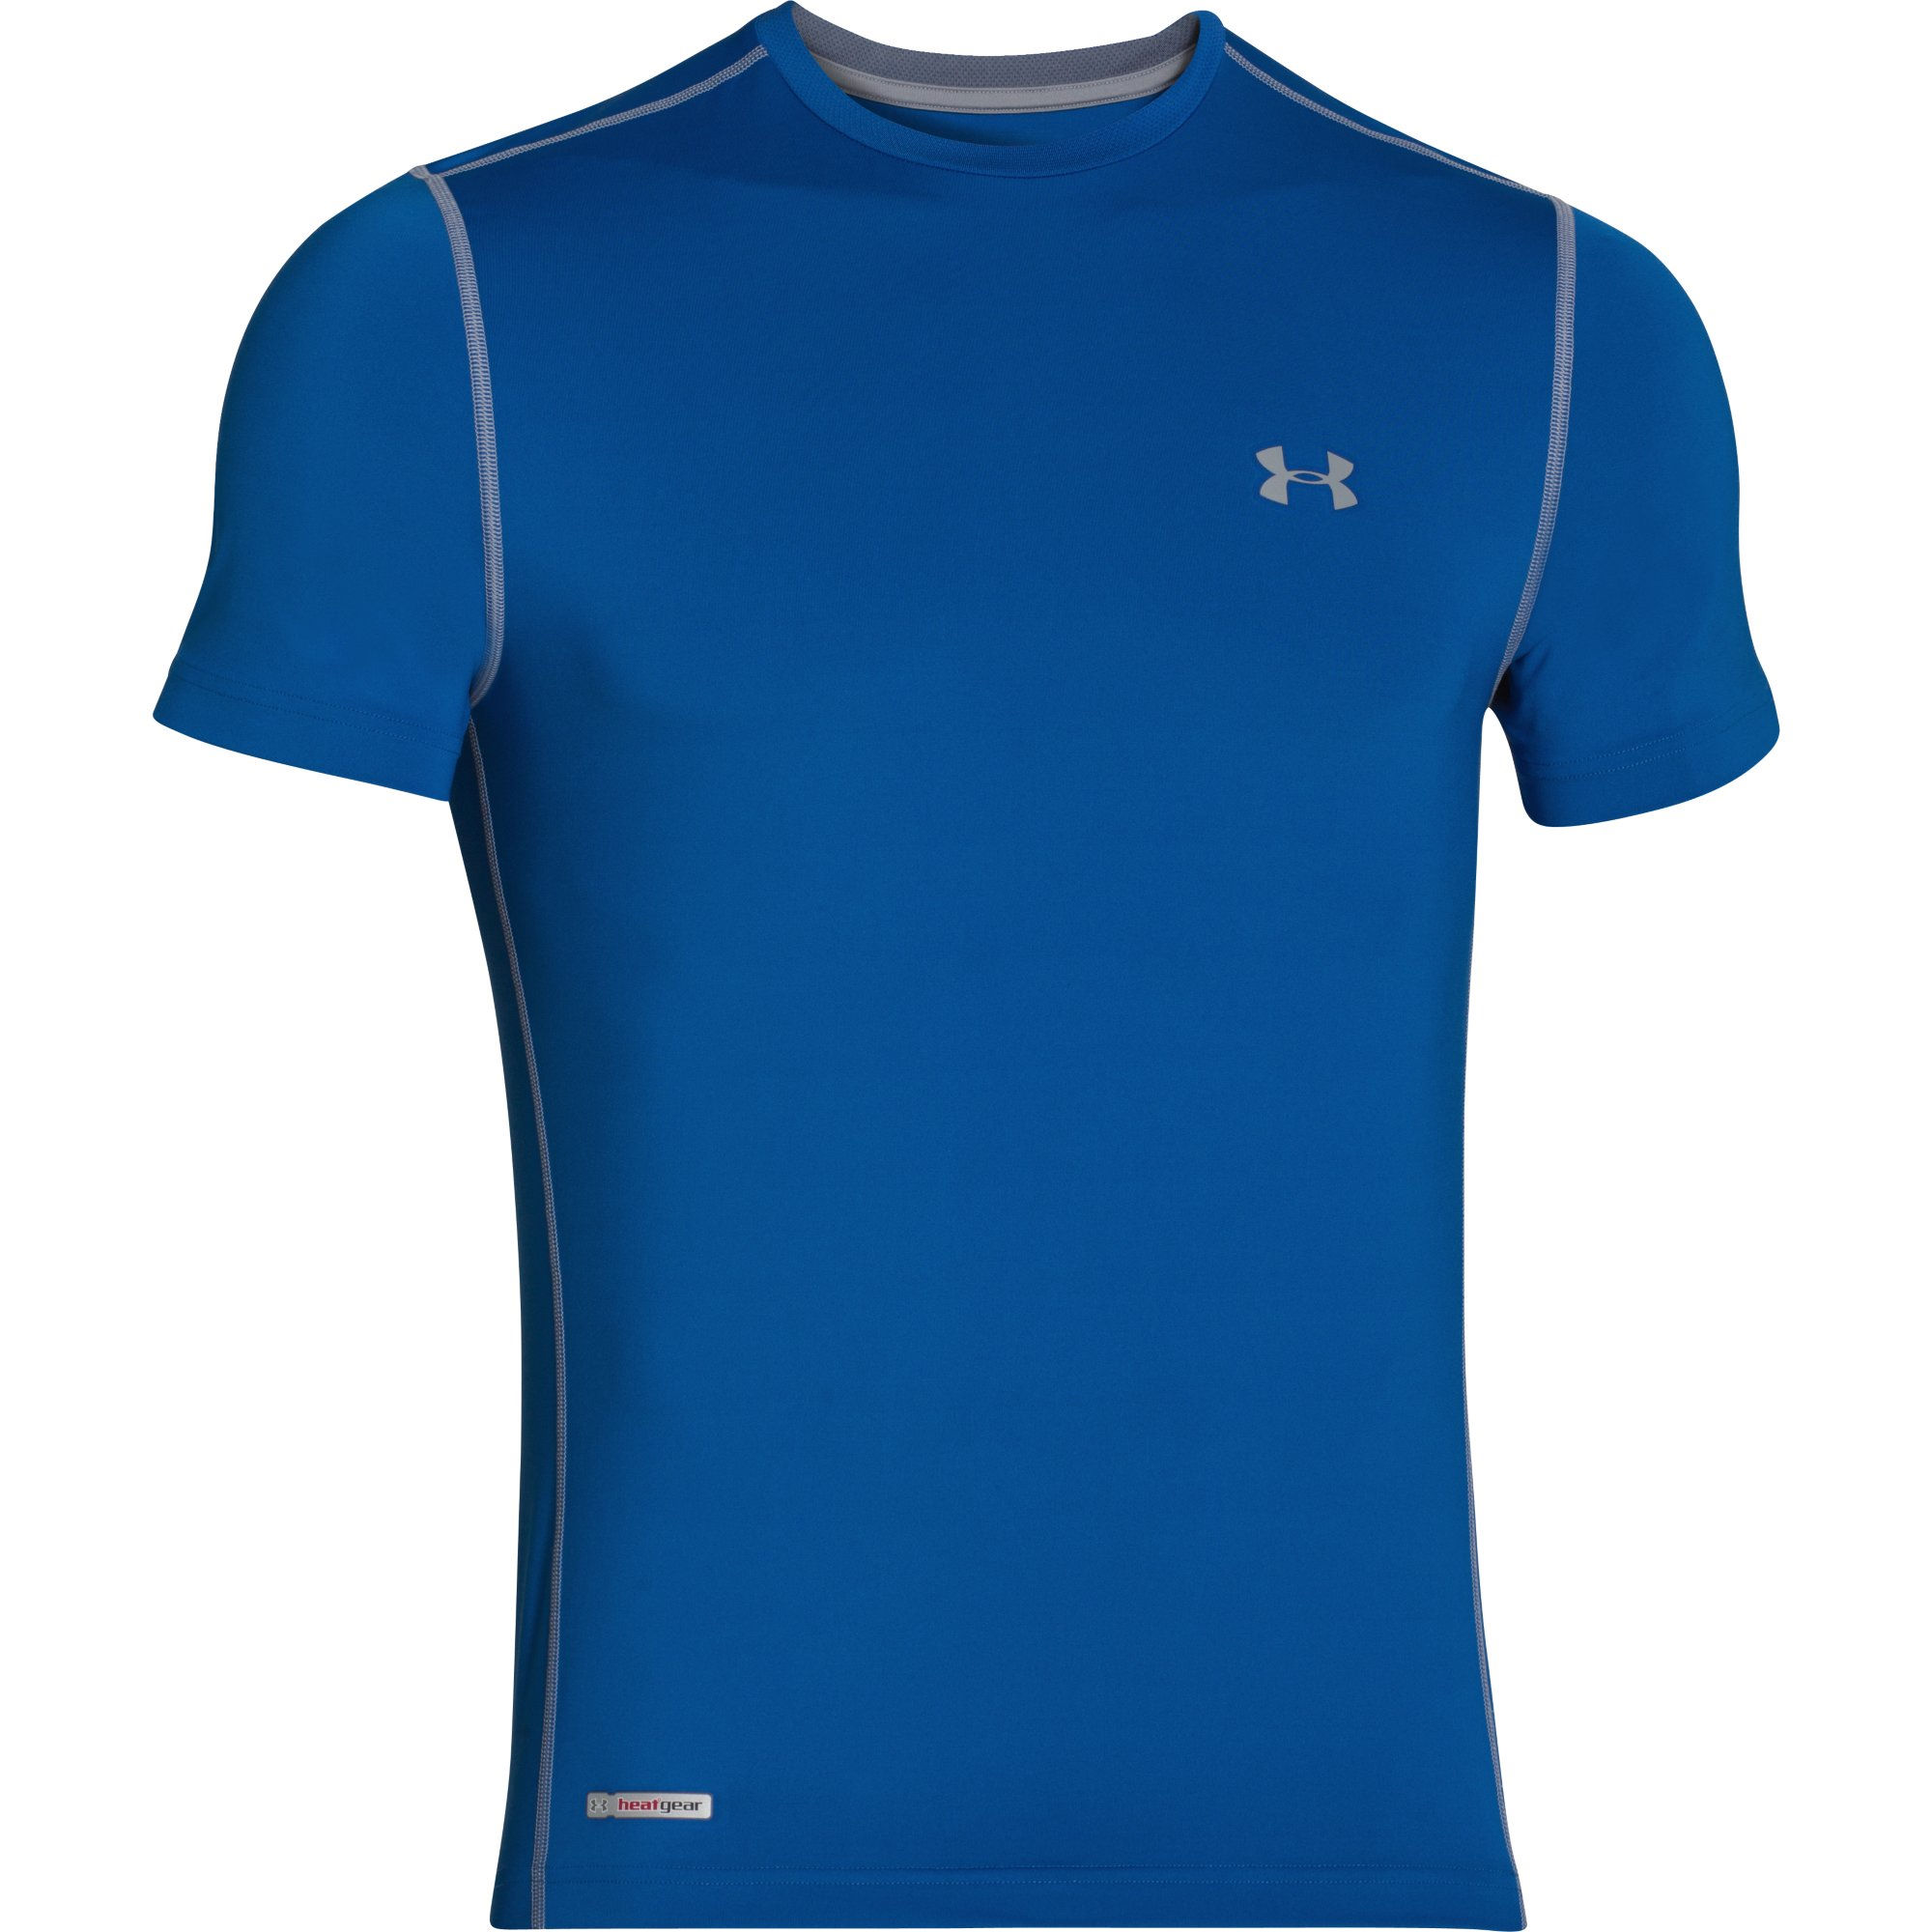 Wiggle under armour heatgear sonic fitted tee running for Under armour men s heatgear sonic fitted t shirt